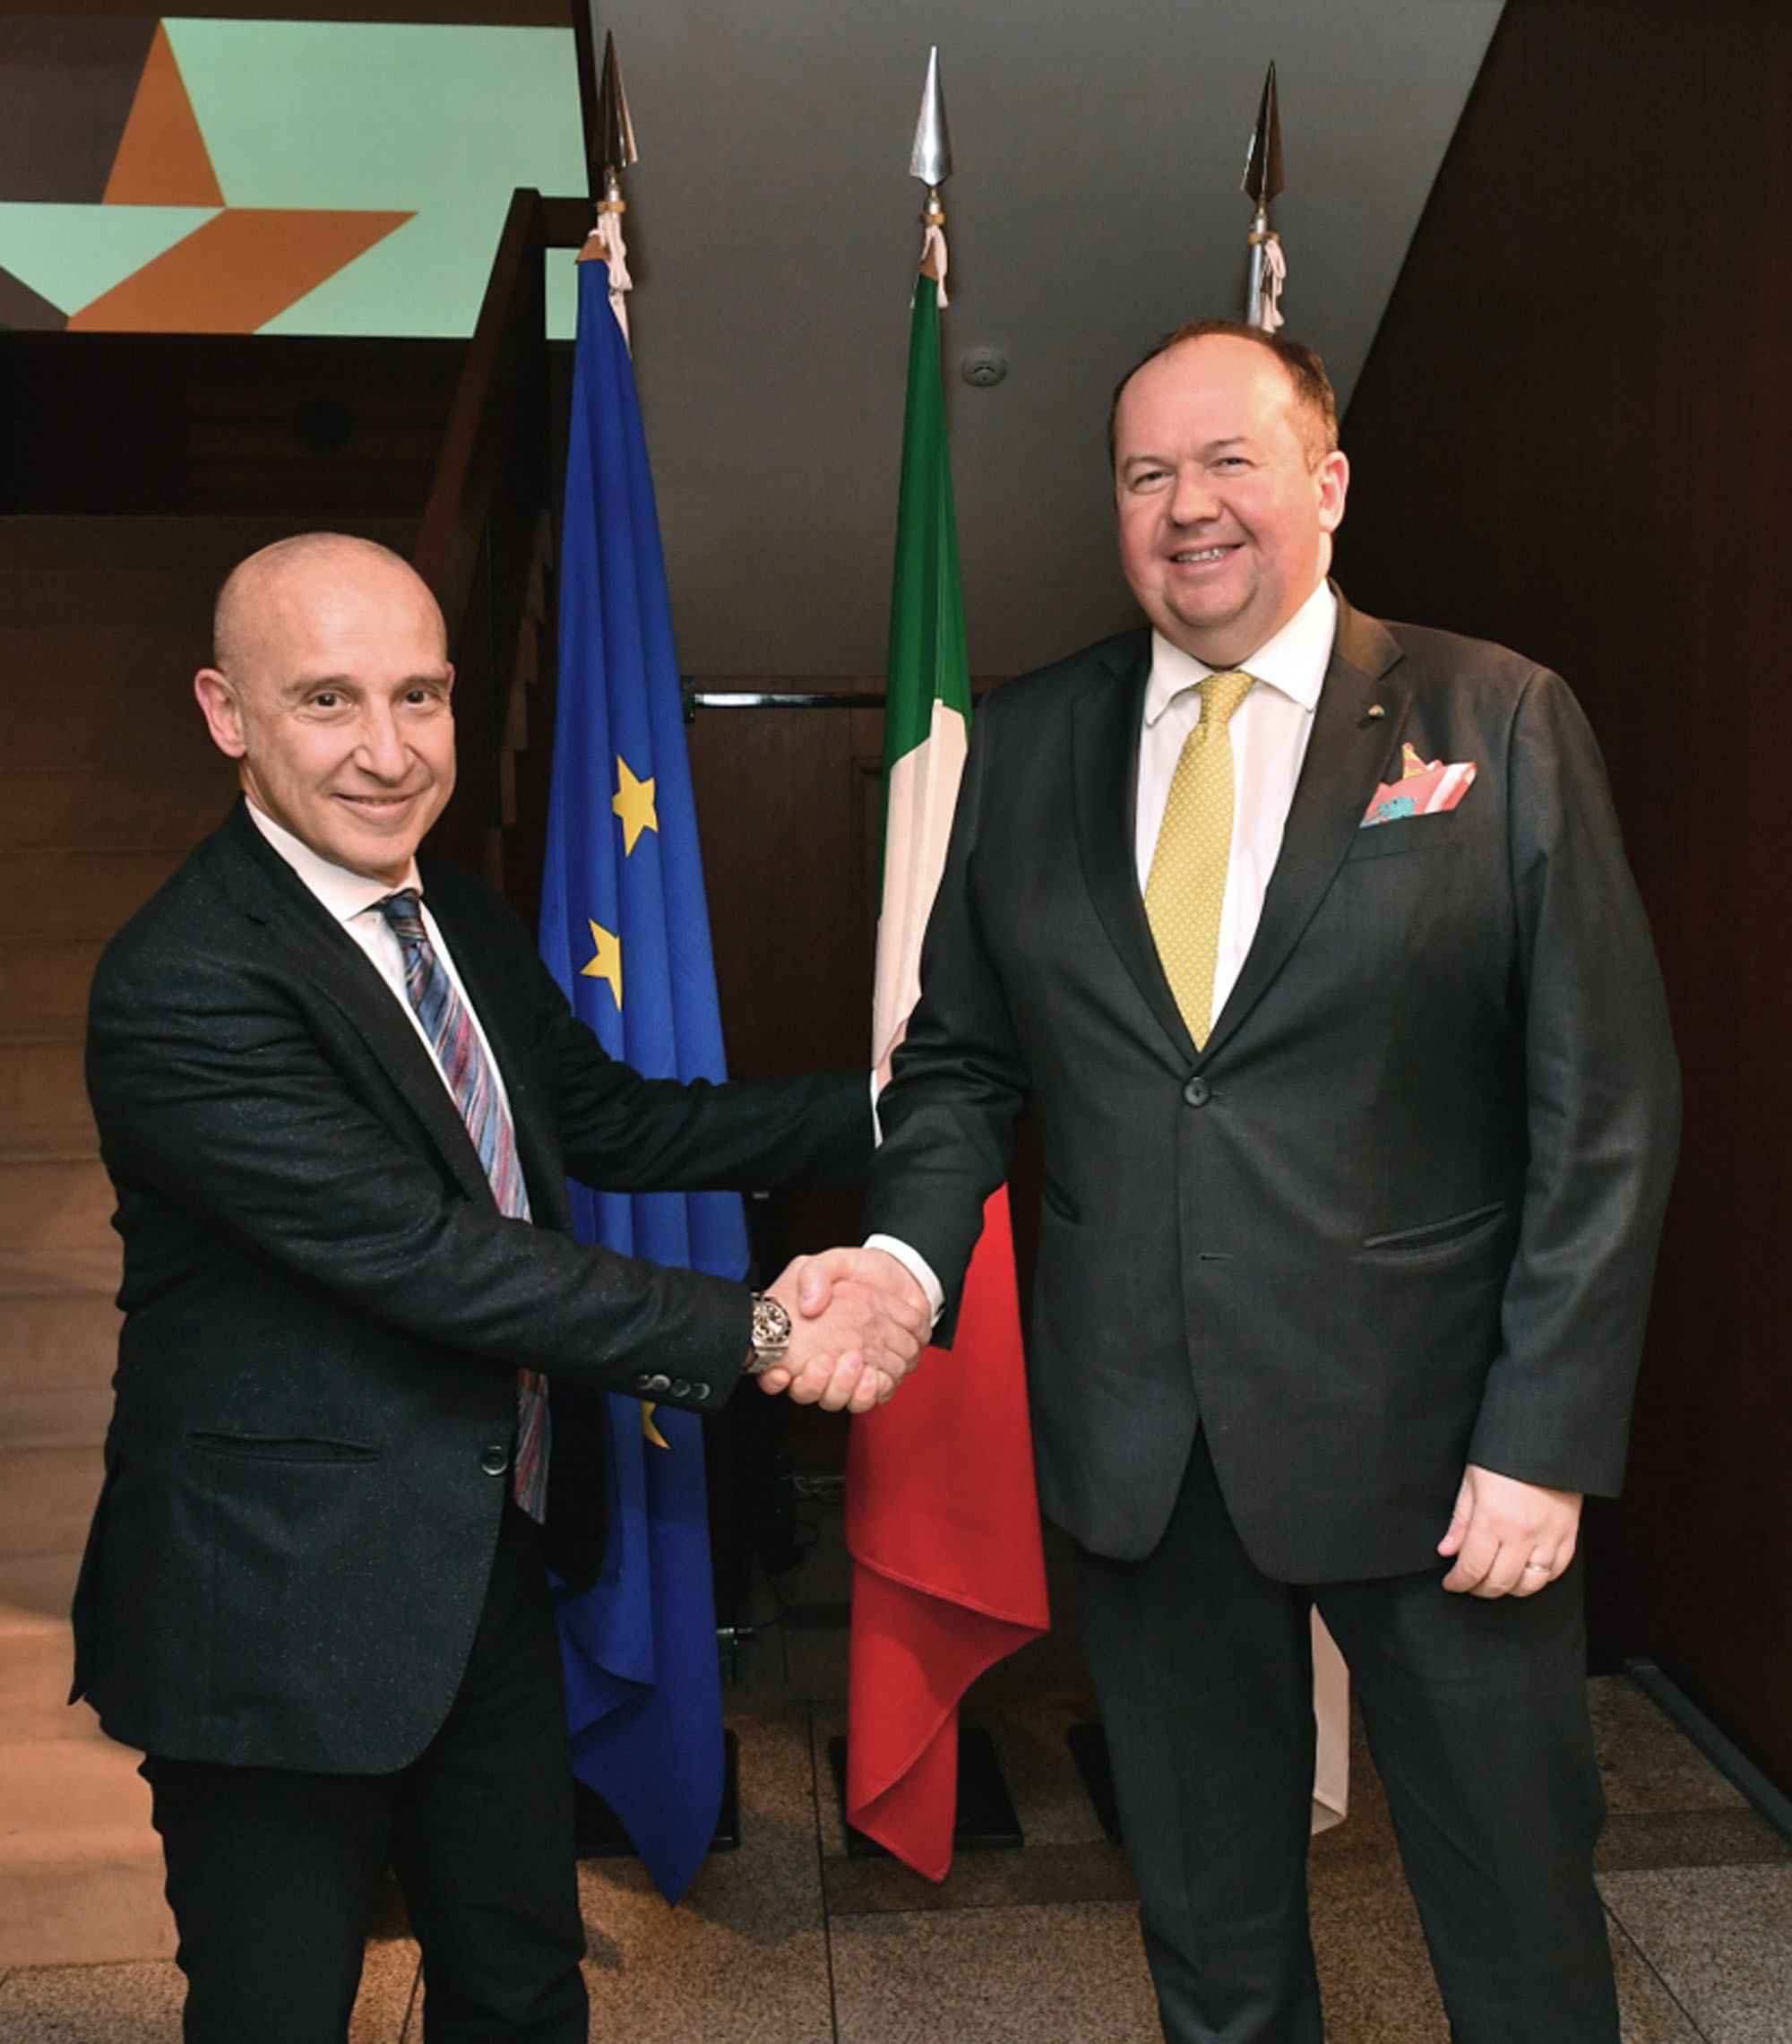 Italian Ambassador Giorgio Starace (left) shakes hand Antonello Mordeglia, president & CEO of Danieli Automation, during a reception to celebrate the 10th anniversary of Danieli Engineering Japan at the ambassador's residence in Tokyo on Jan. 24. |   YOSHIAKI MIURA